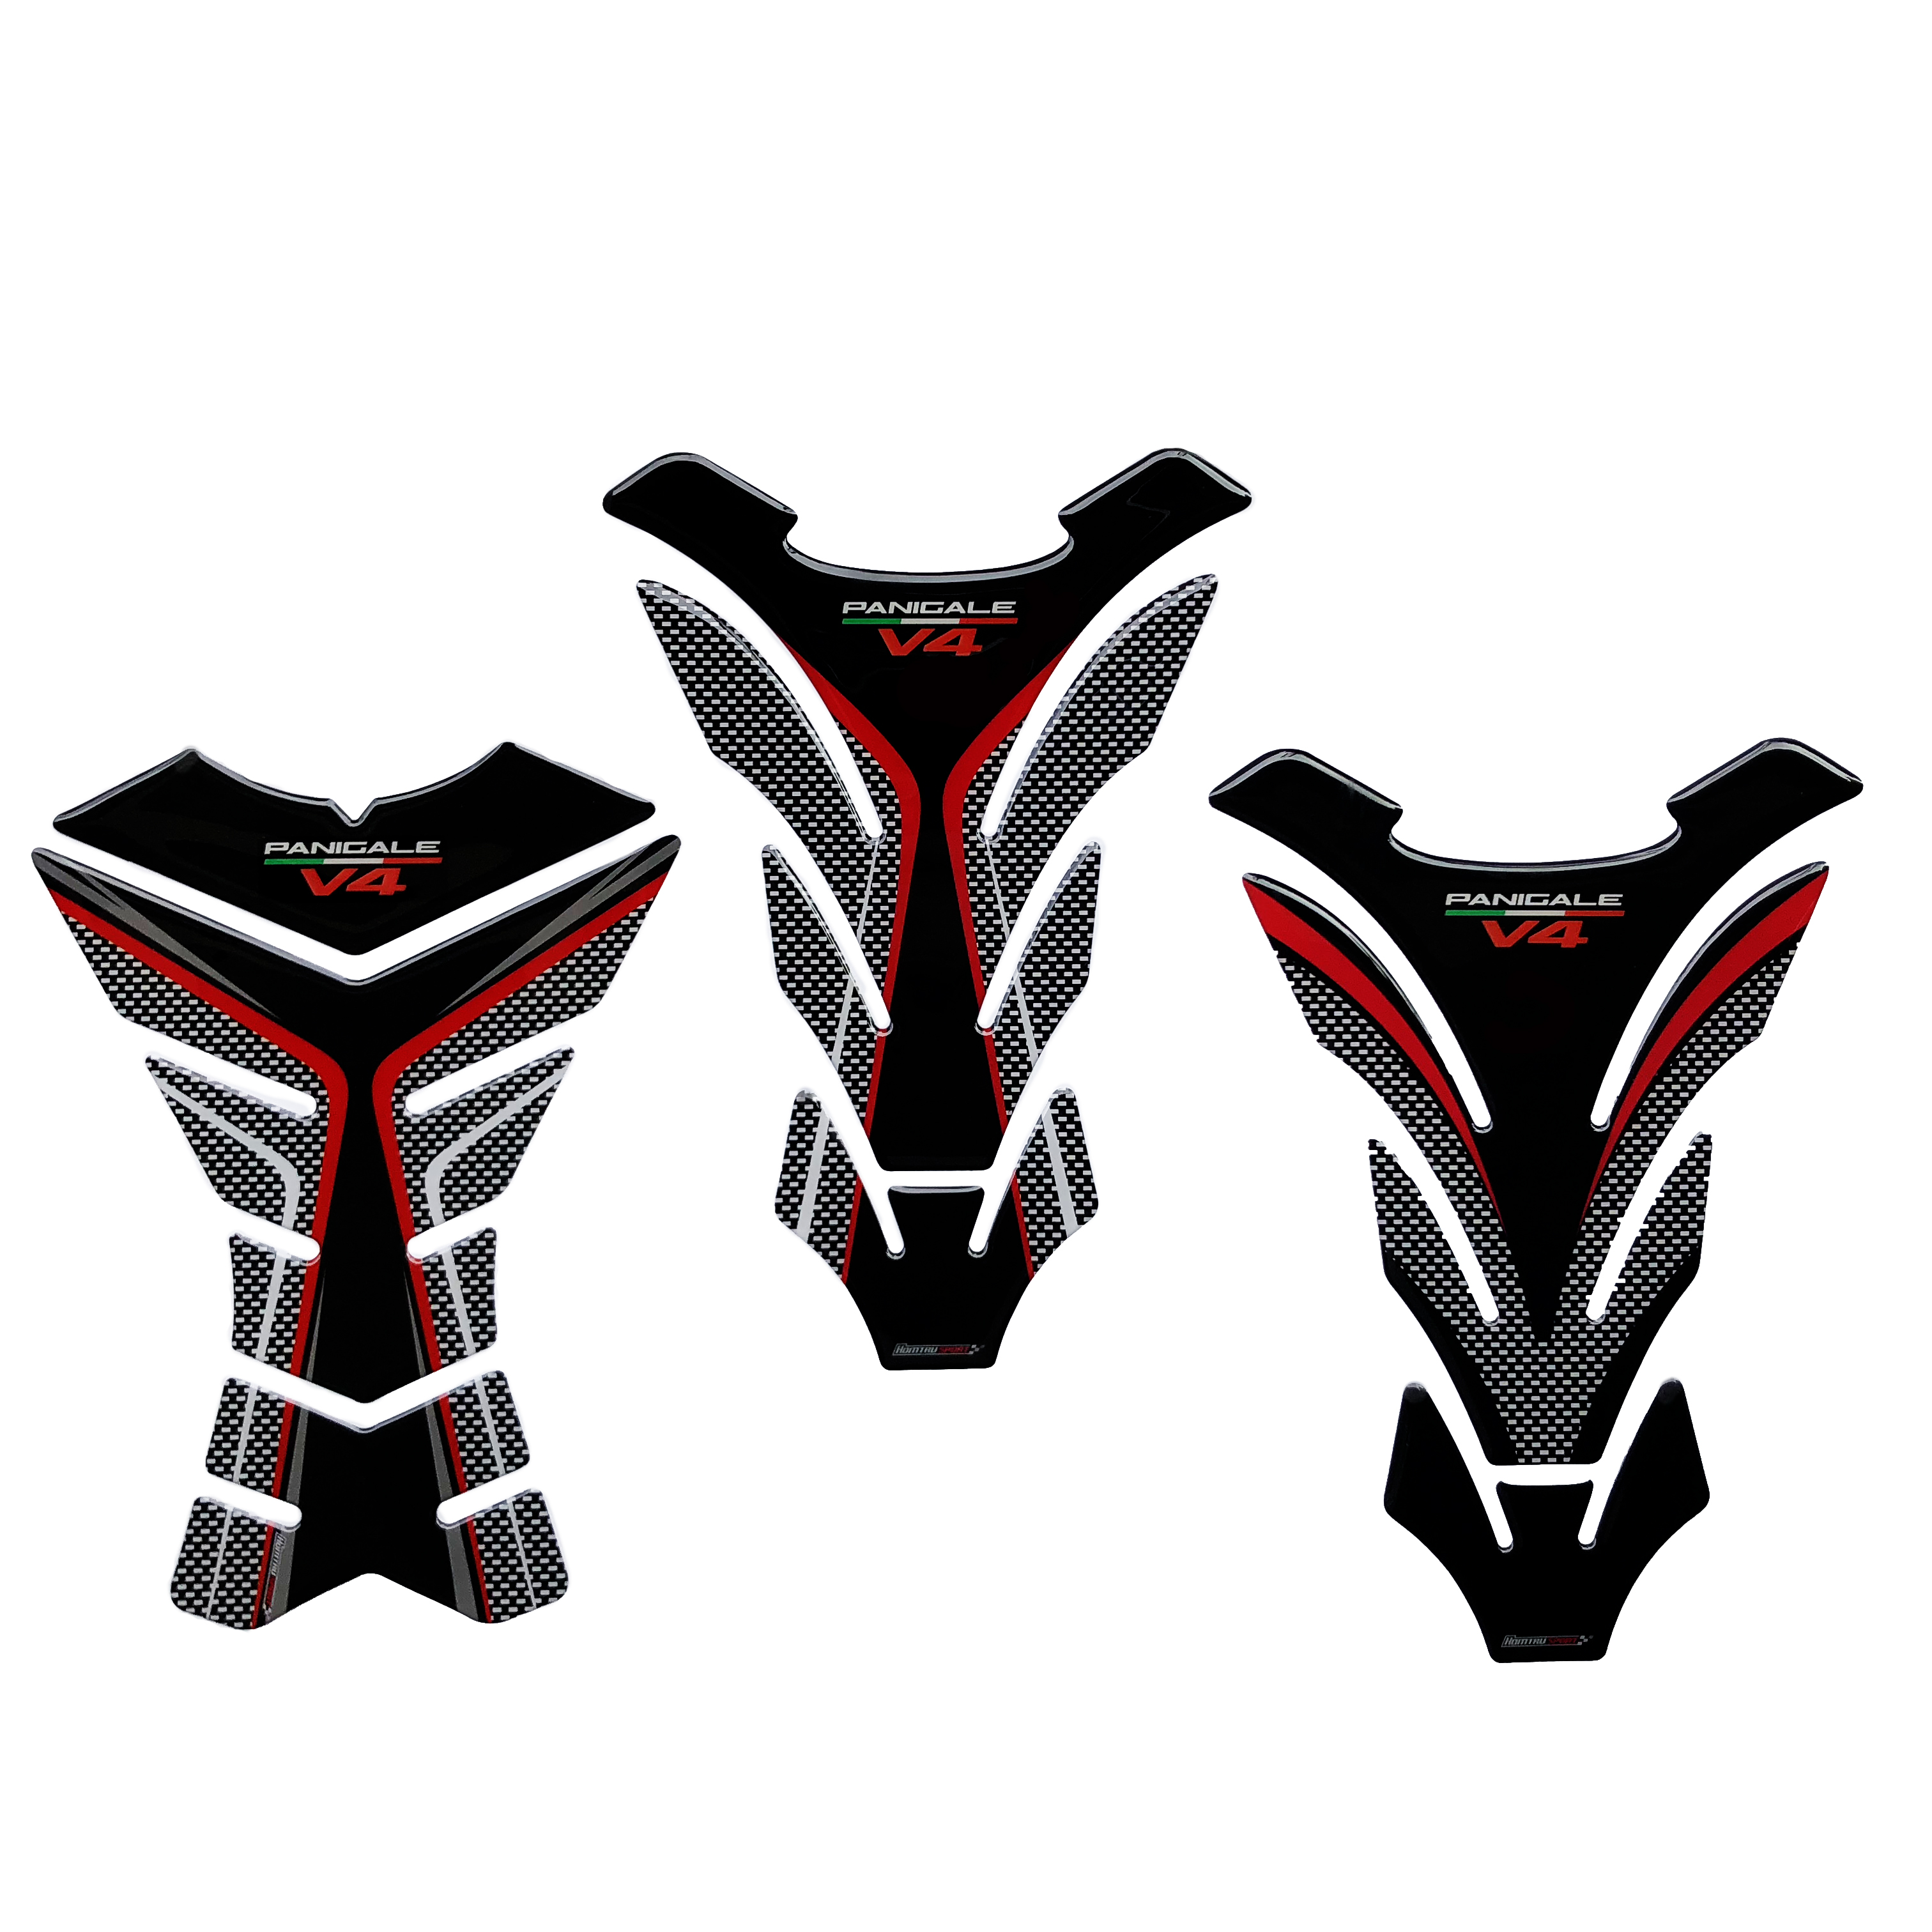 3D Motorcycle Gas Fuel Oil Tank Pad Protector Sticker Decal Case For Ducati Panigale V4 S R Speciale Tank Pad Accessories